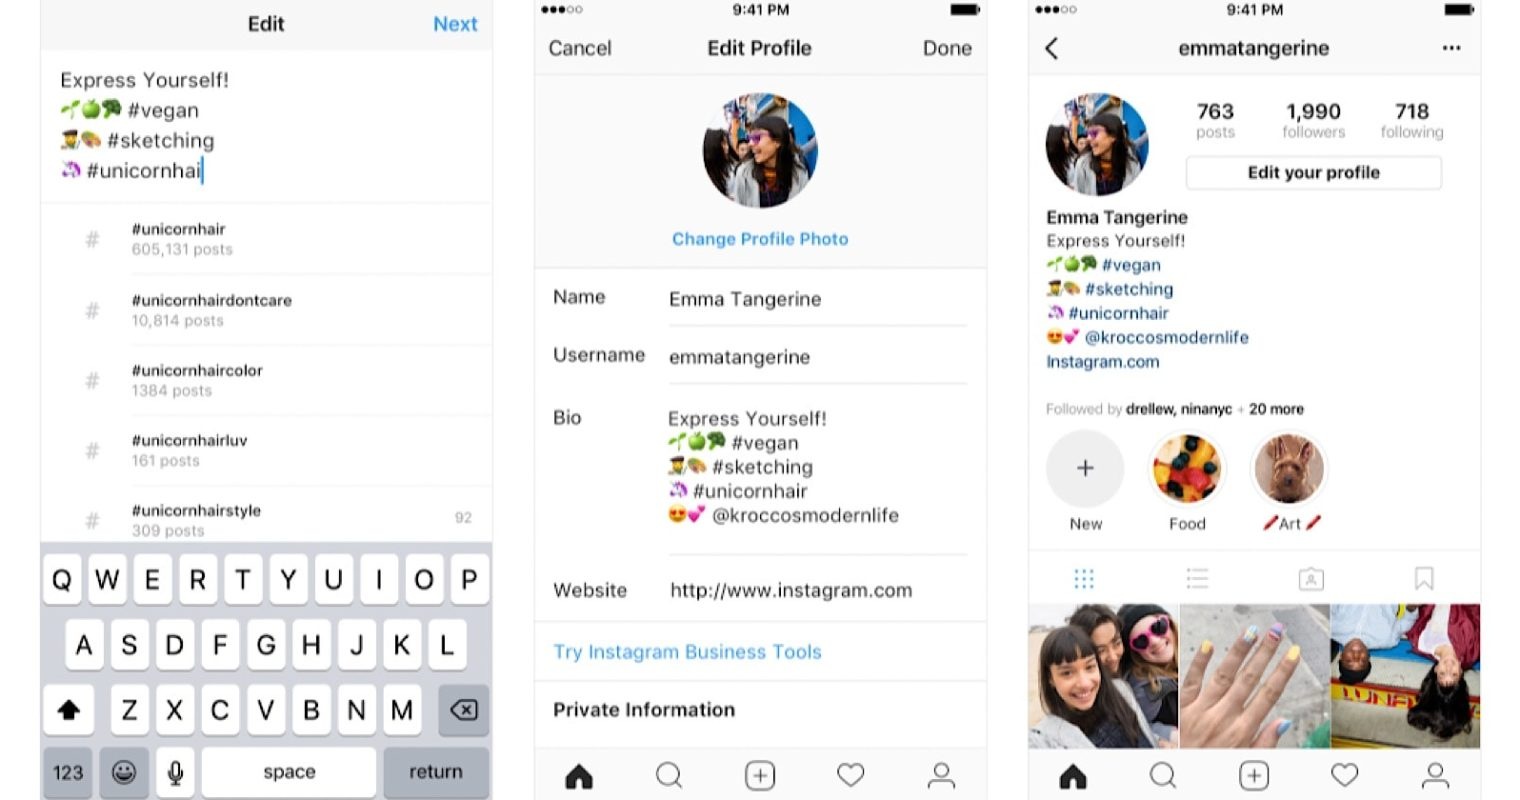 Instagram Adds Support for Hashtags & Profile Links in Bios